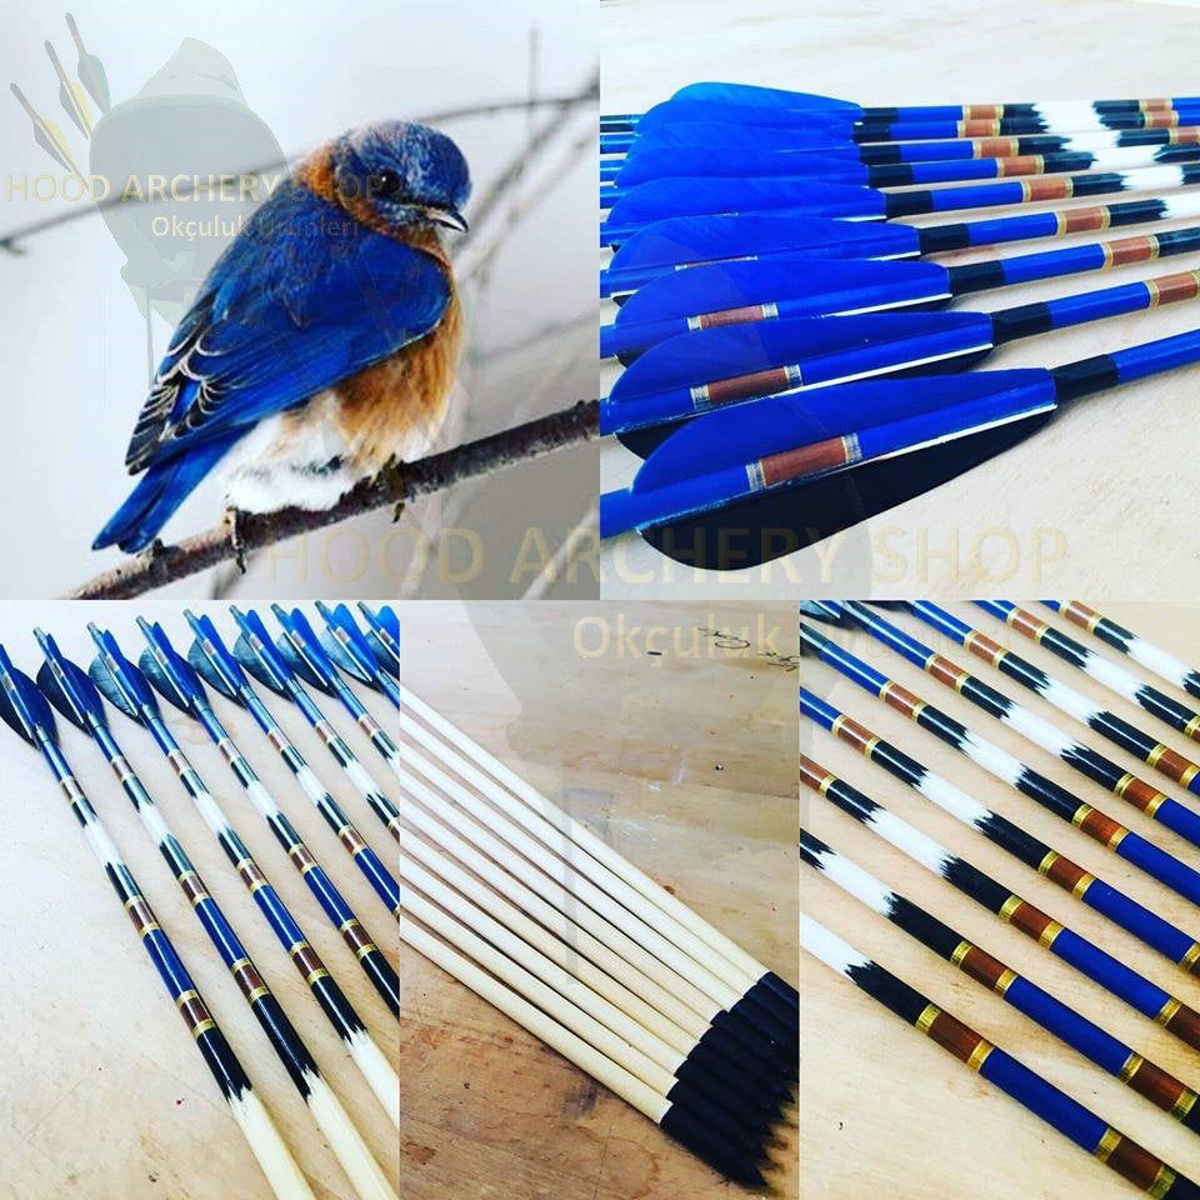 Medieval Traditional Ottoman Hunting Archery Arrow For Recurve Longbow Bow Shoot with Painted Brown Detail Blue Black Turkey Feather. ürün görseli